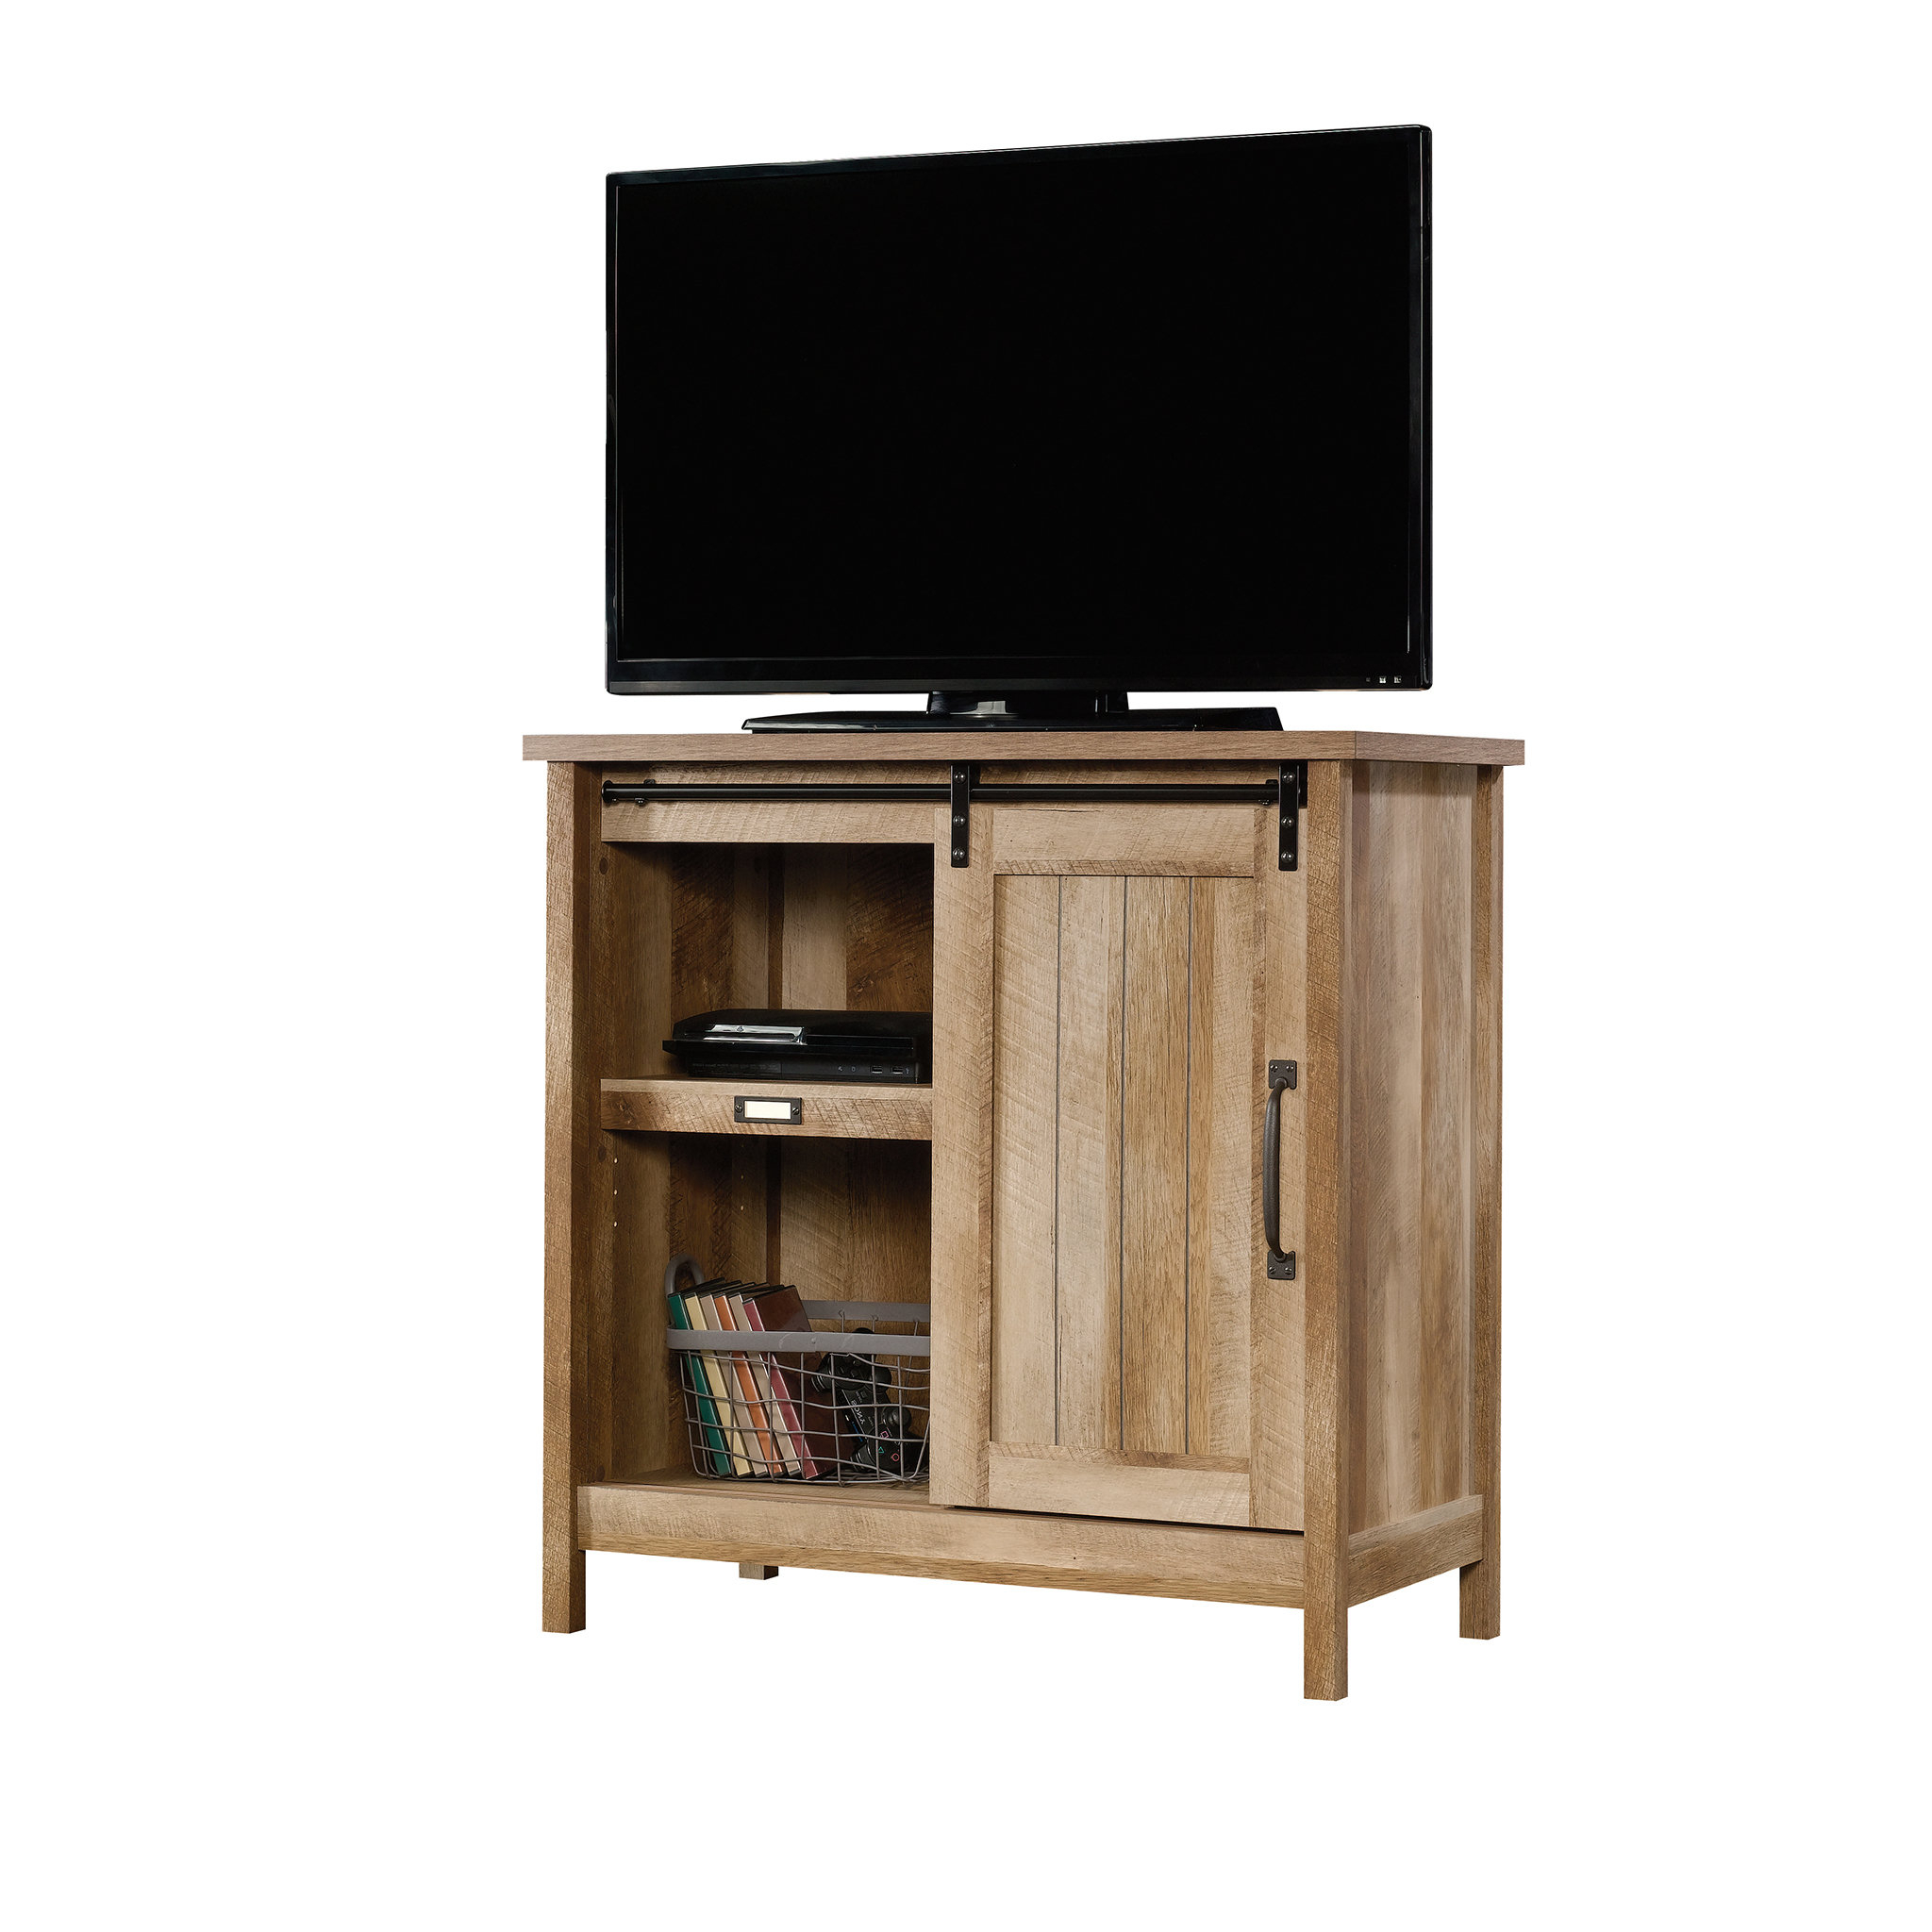 Tall Tv Stands You'll Love | Wayfair Inside Edwin Black 64 Inch Tv Stands (View 8 of 20)